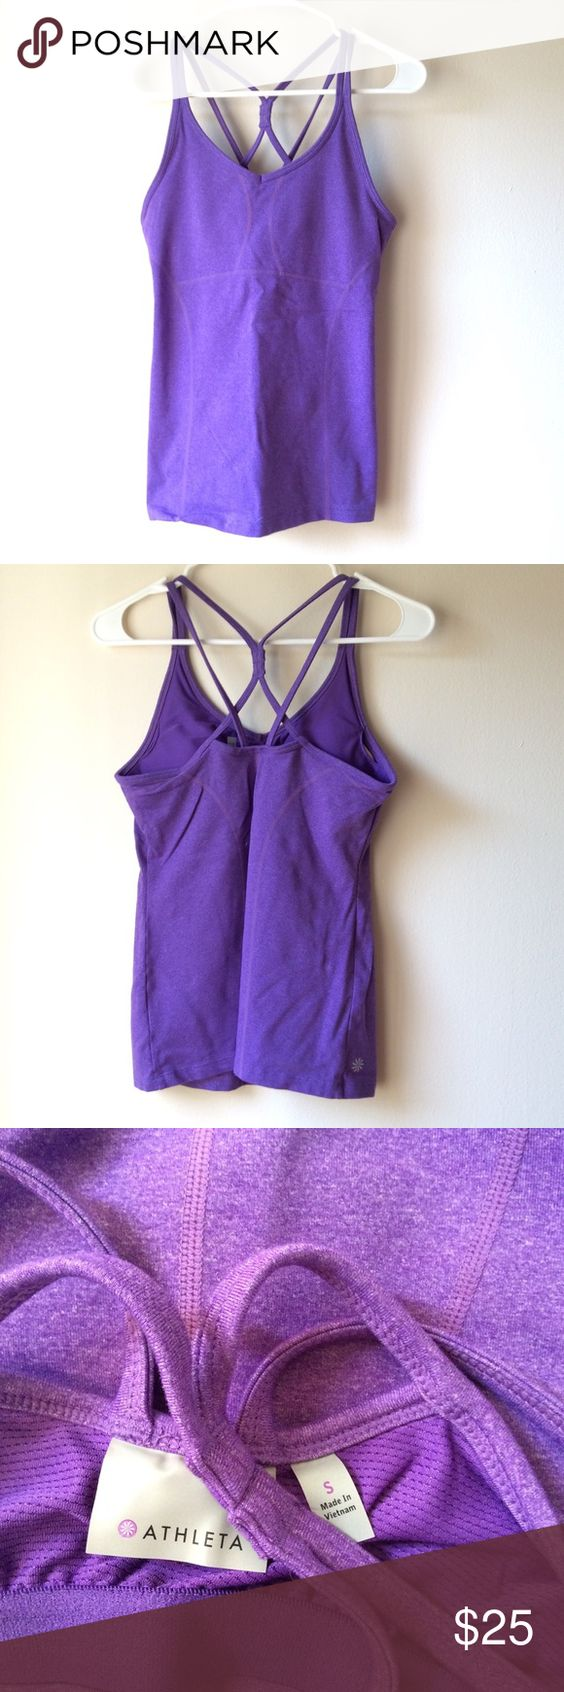 Athleta support tank - MAKE ME AN OFFER! MOVING OVERSEAS - MUST GO (or go to goodwill) !! Athleta support tank. Super cute for the gym! Barely worn - GREAT condition. Cute strap details in the back. Athleta Tops Tank Tops